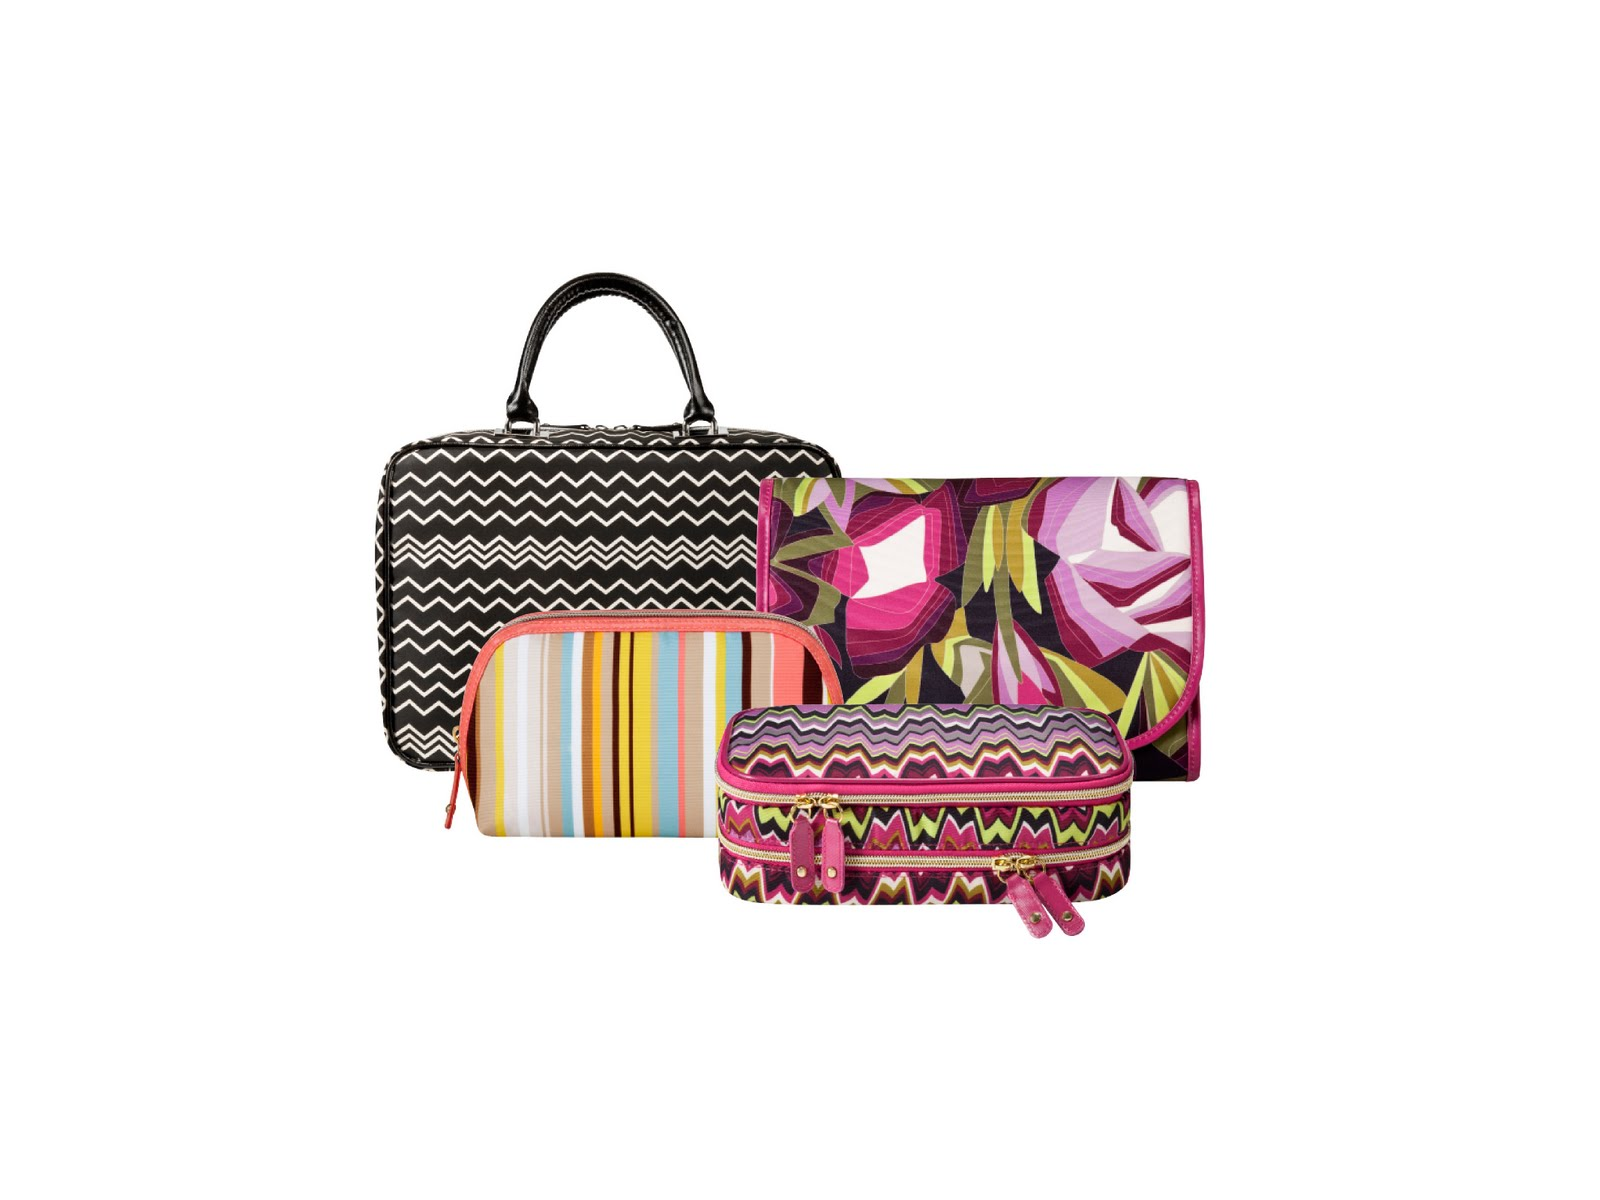 http://2.bp.blogspot.com/-Hd05NmgpbAE/TkslMDsqUkI/AAAAAAAAD98/ywvXMgF9mB8/s1600/Missoni+Target+travel+cases.jpeg